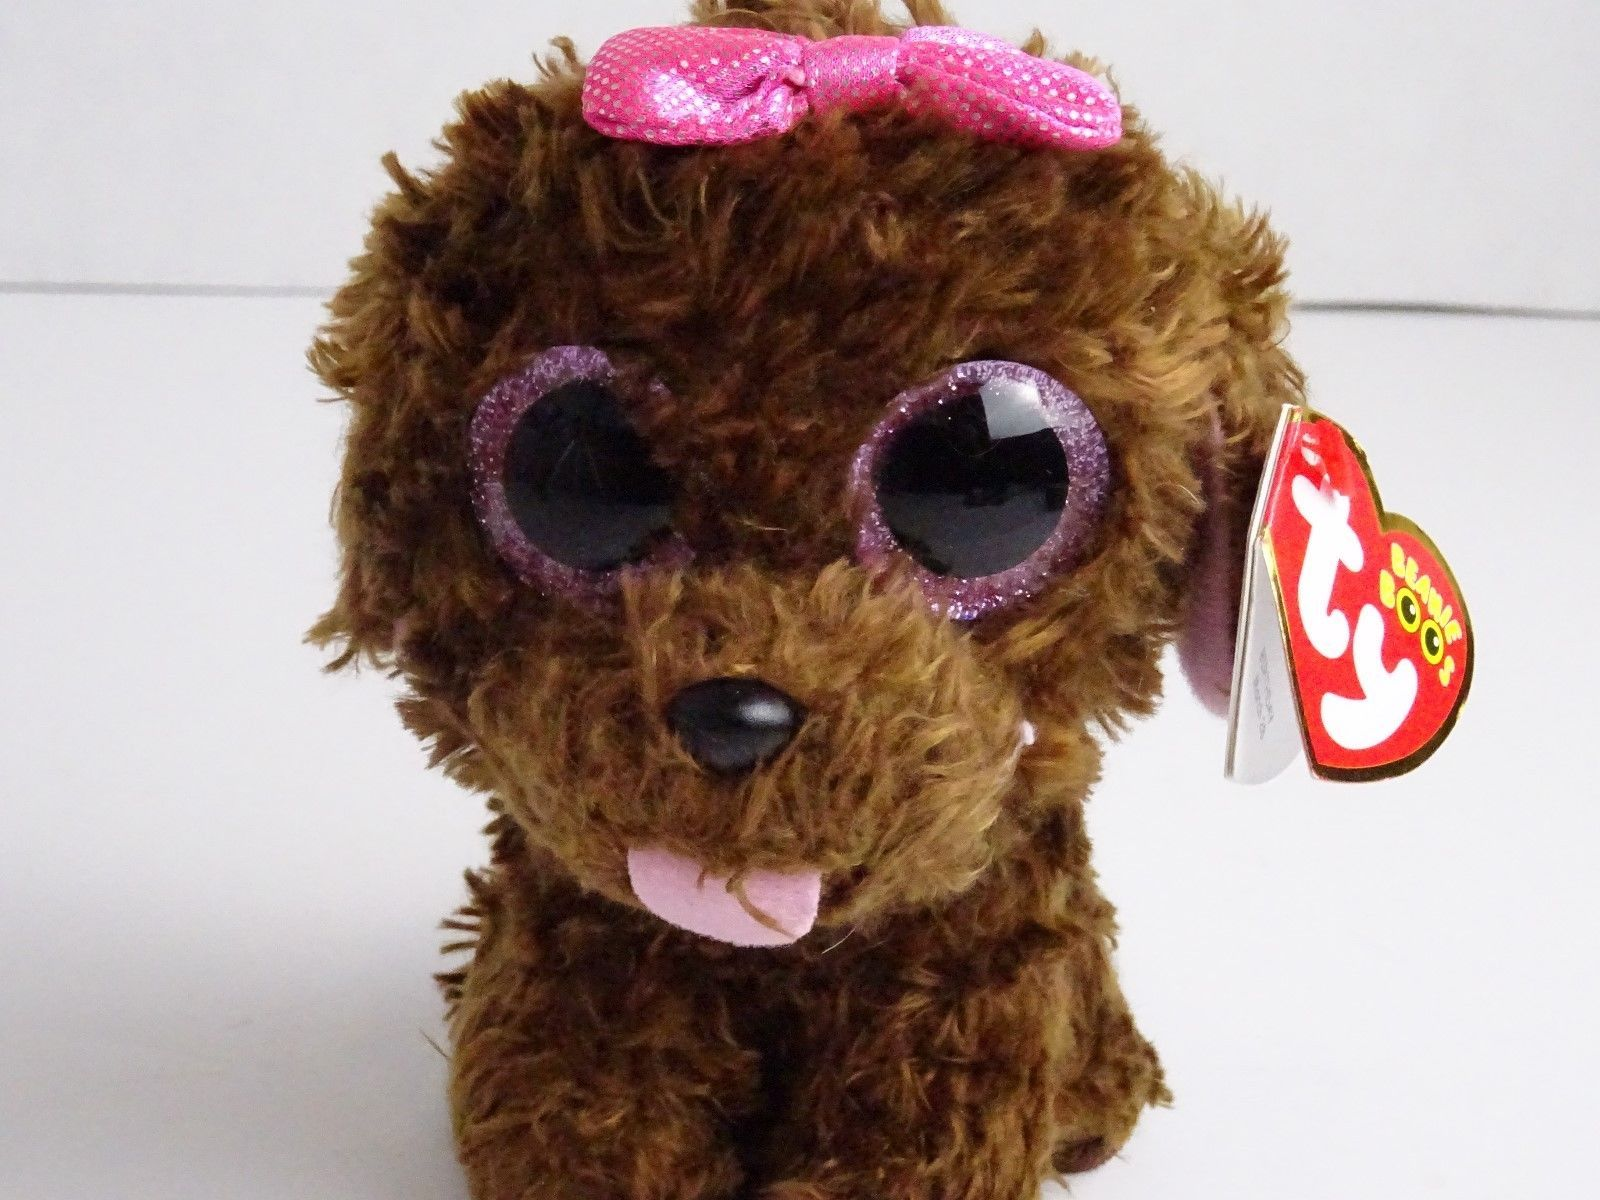 956bab4f679 TY Beanie Boo MADDIE the Brown Dog Plush and 50 similar items